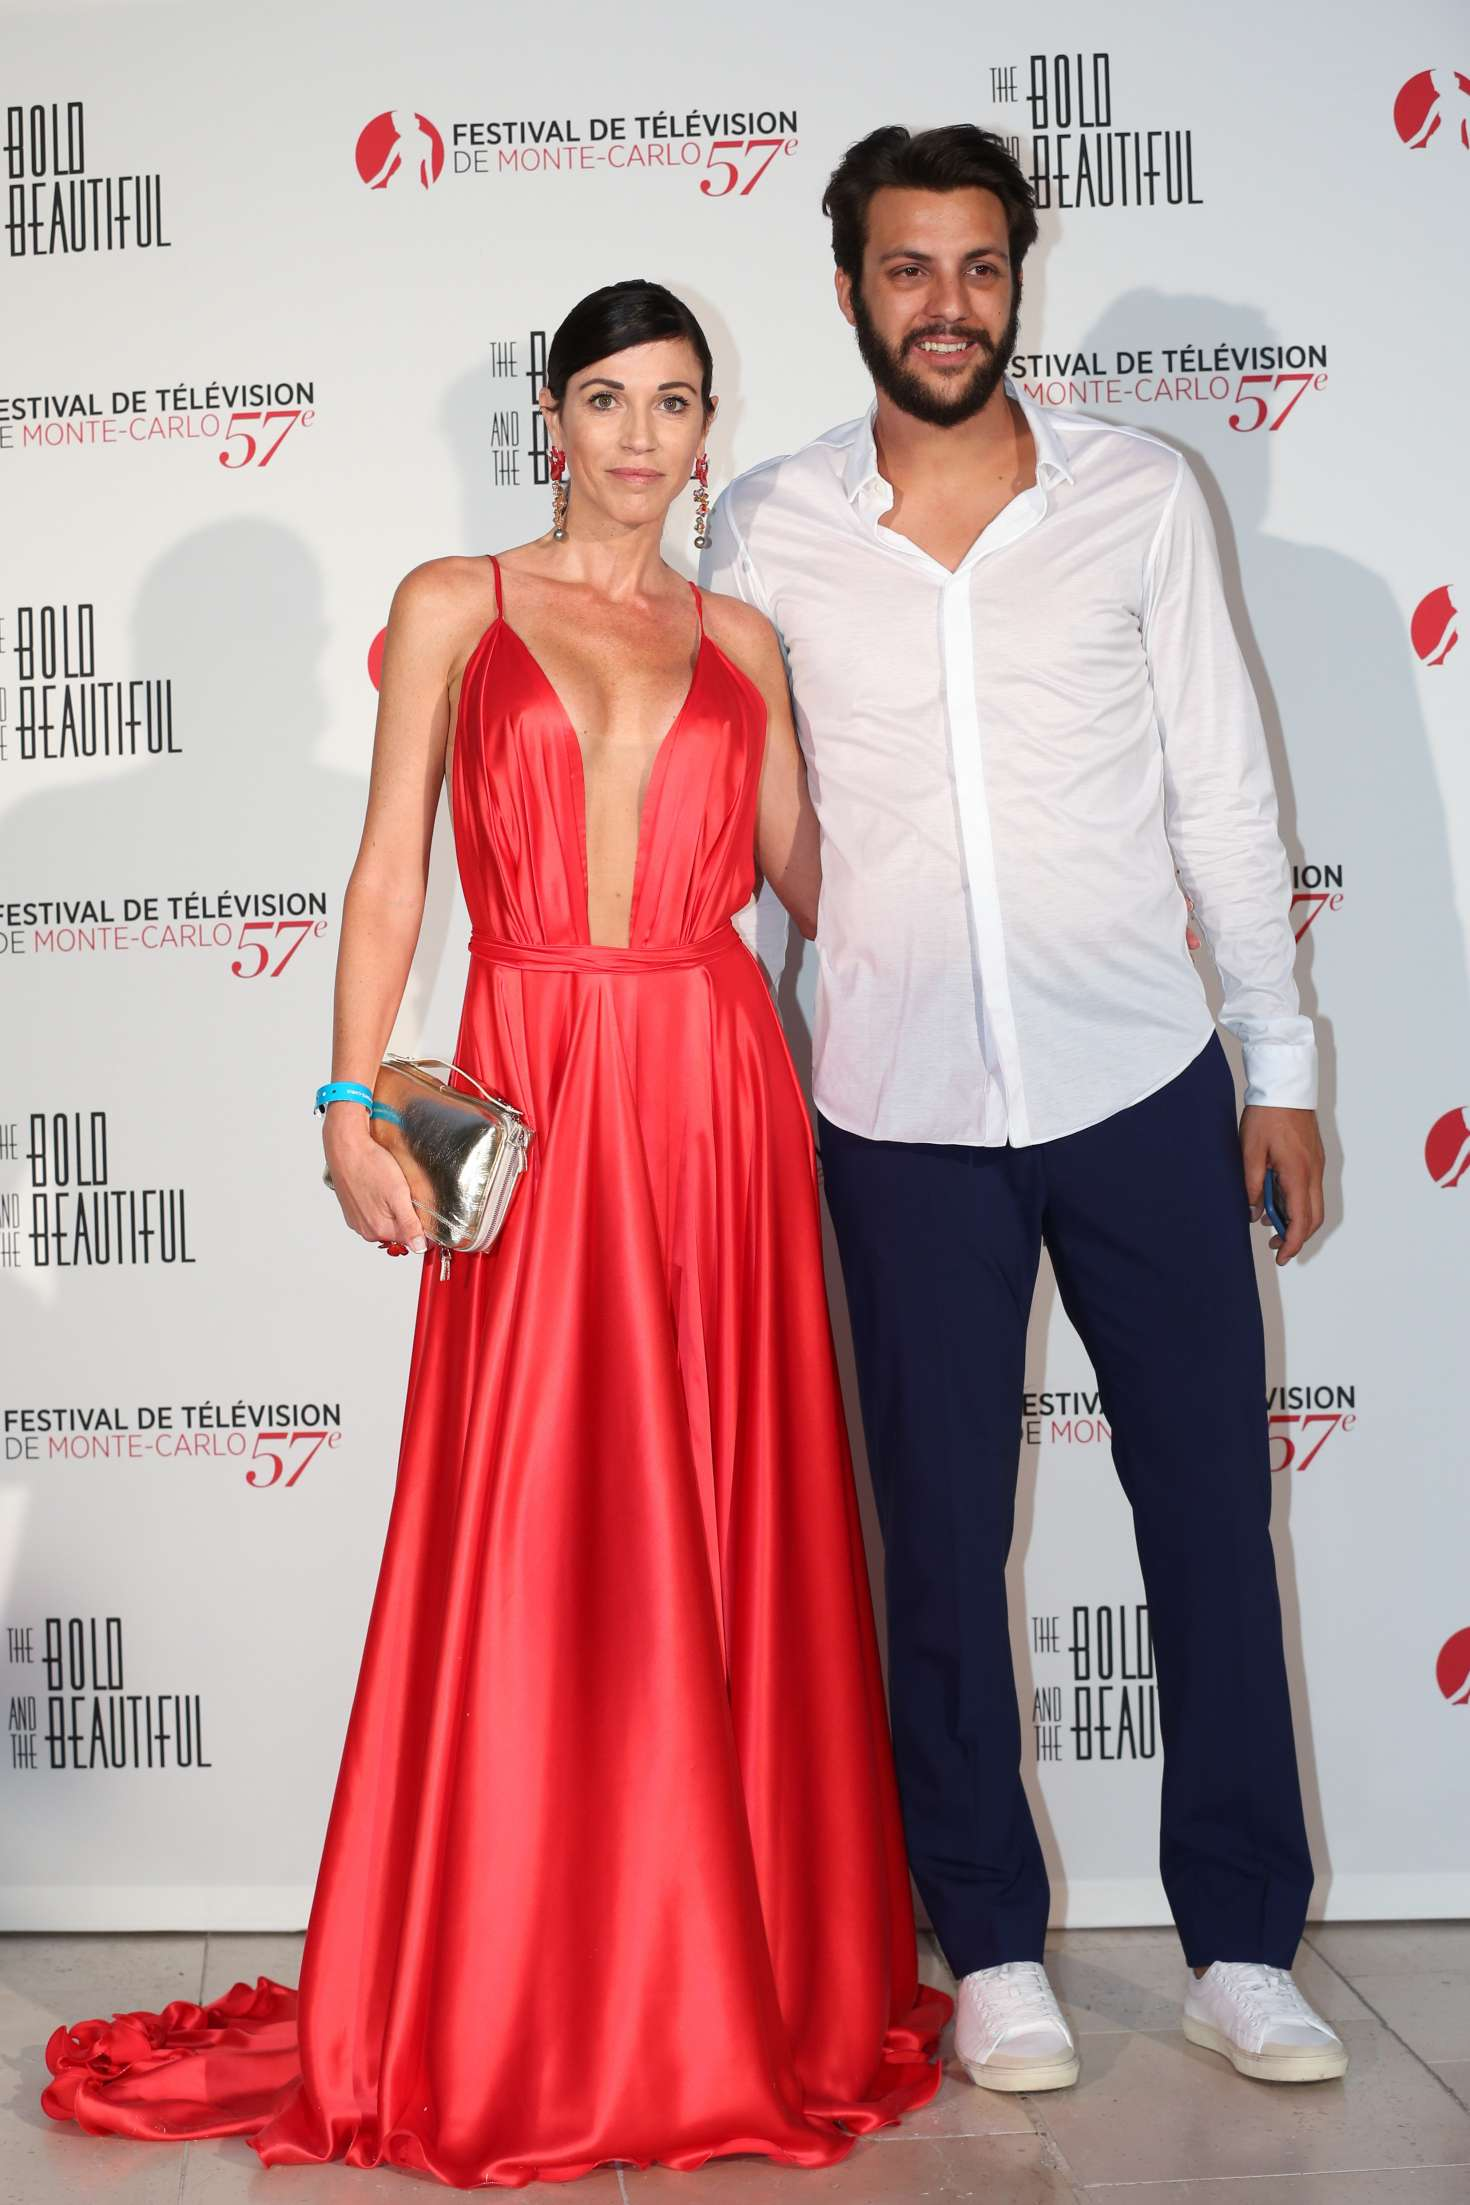 Federica Torti – 'The Bold and the Beautiful'Anniversary Event in Monte Carlo-02